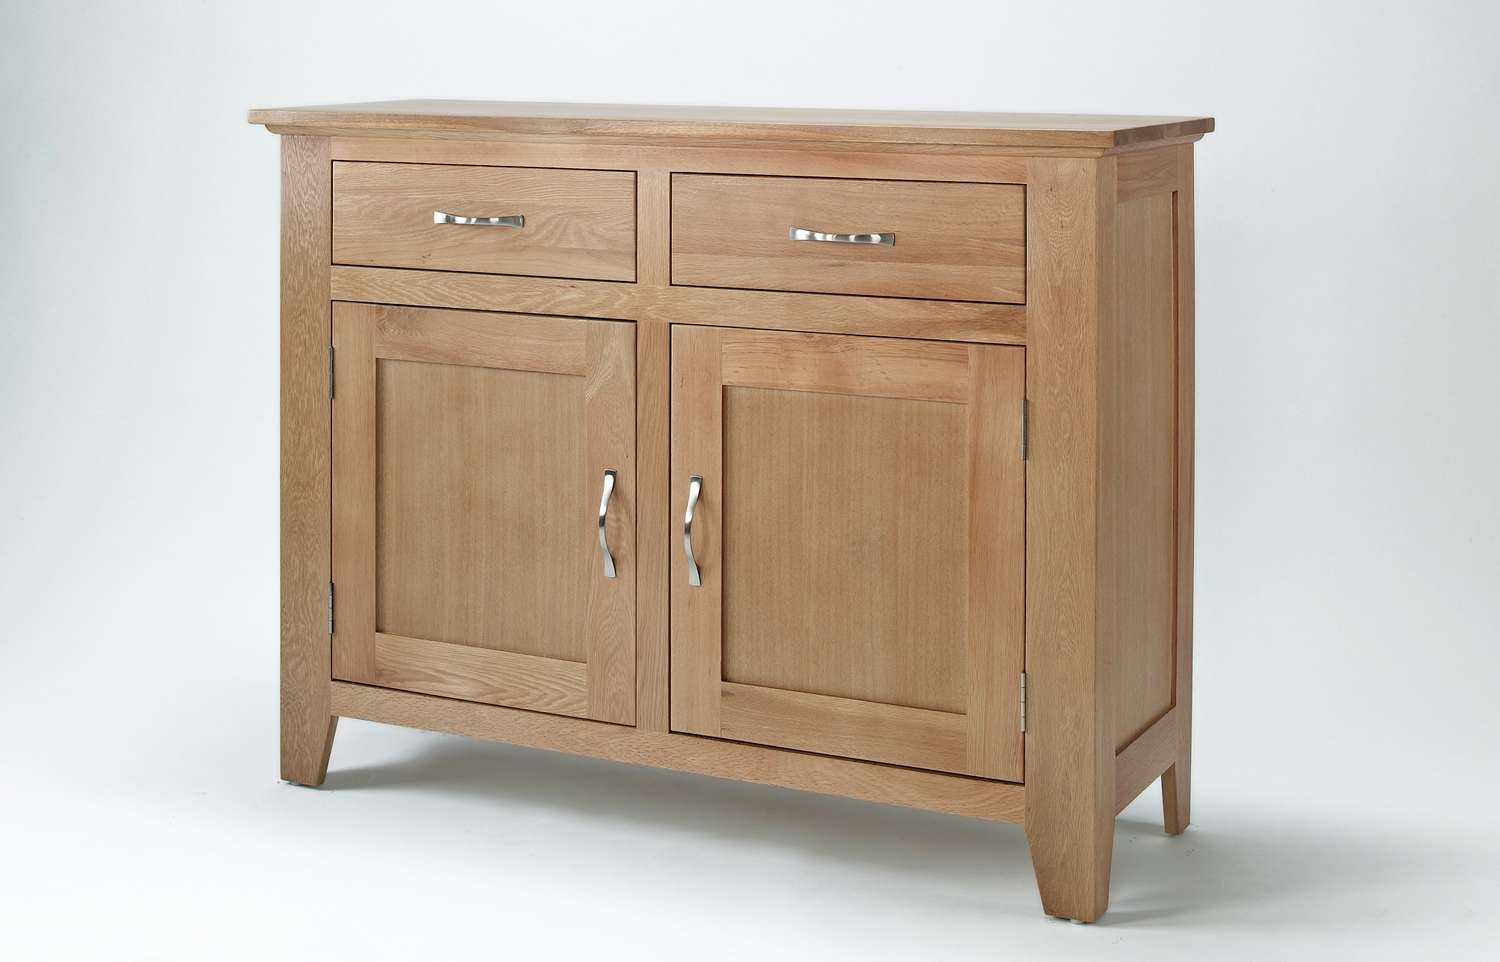 Sherwood Oak Sideboard With 2 Doors & 2 Drawers Intended For 2 Door Sideboards (View 13 of 20)